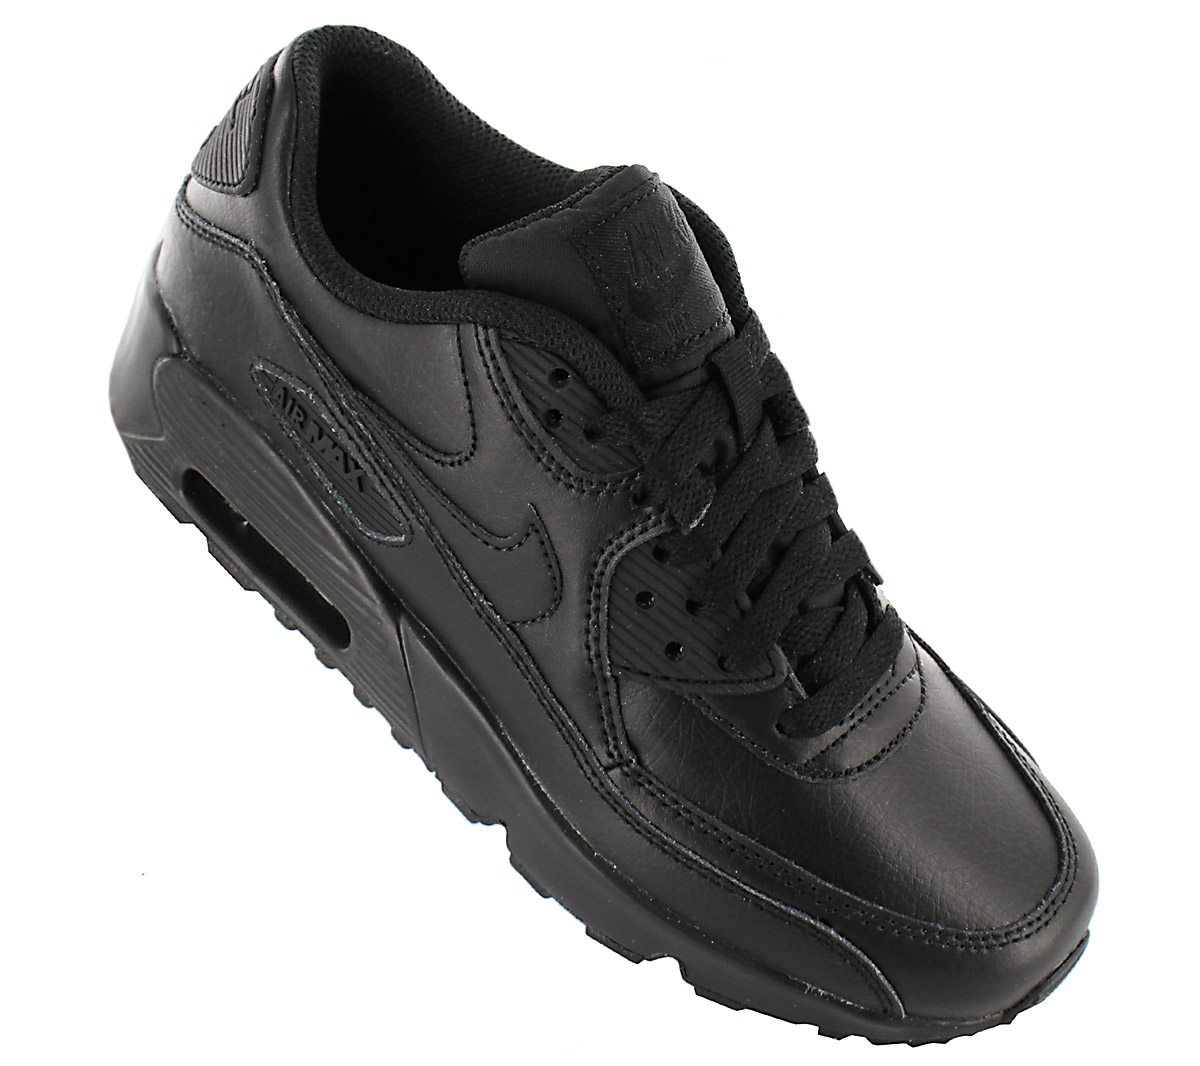 Details about Nike air max 90 Leather Women's Sneaker Shoes Leather Black 833412 001 Trainers